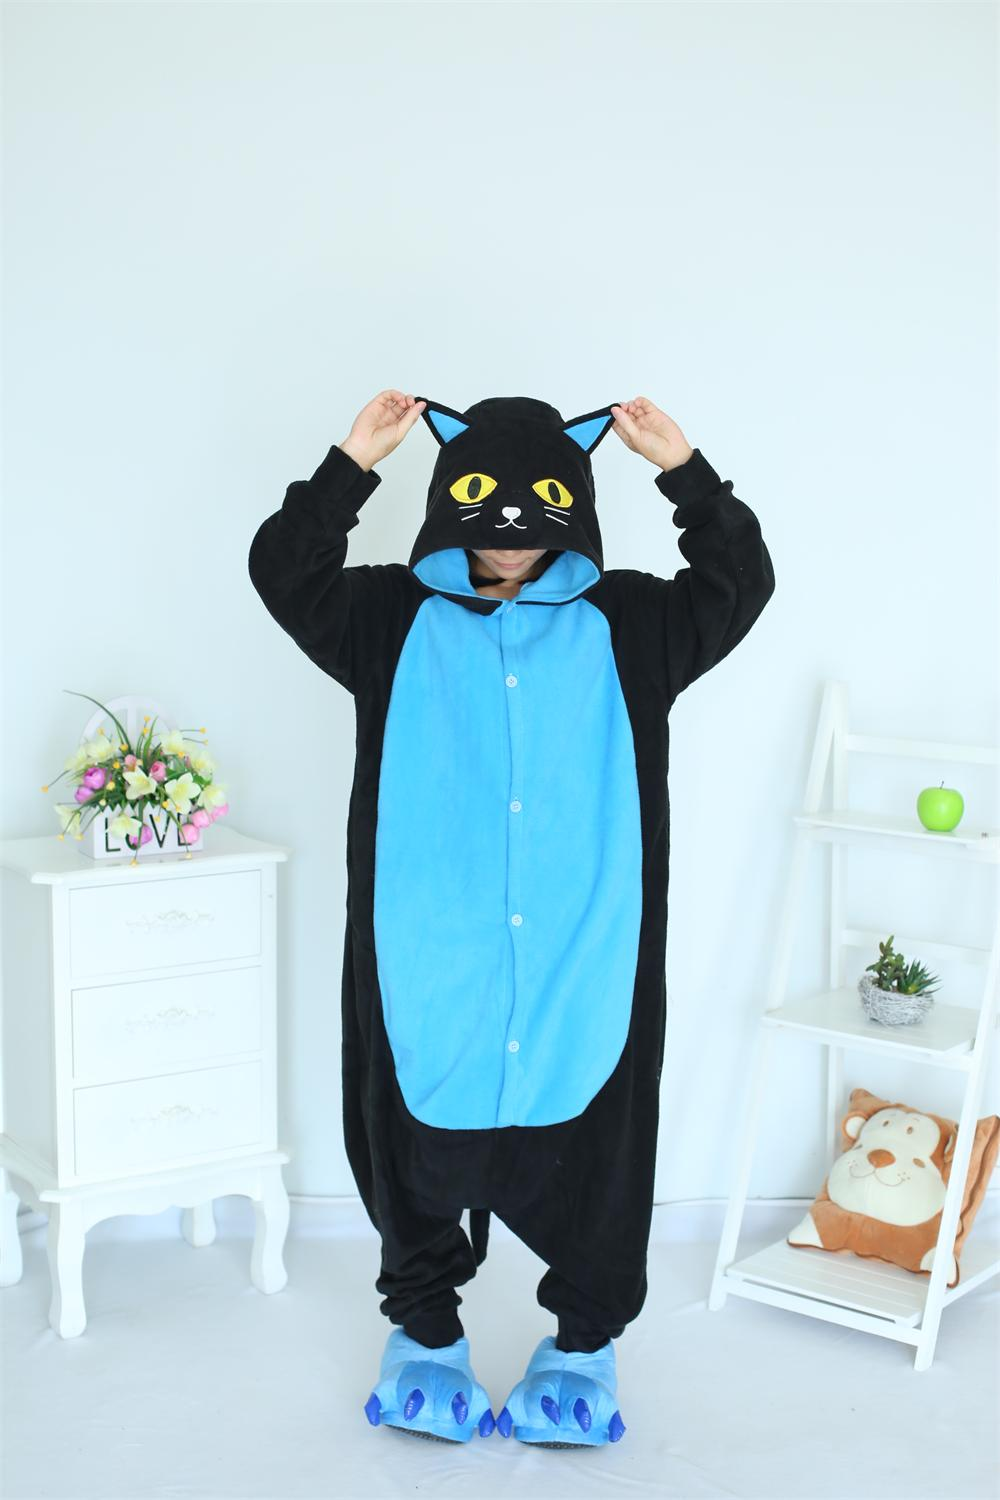 Buy cat costume for women pajamas and get free shipping on AliExpress.com 6f74ea32ded37